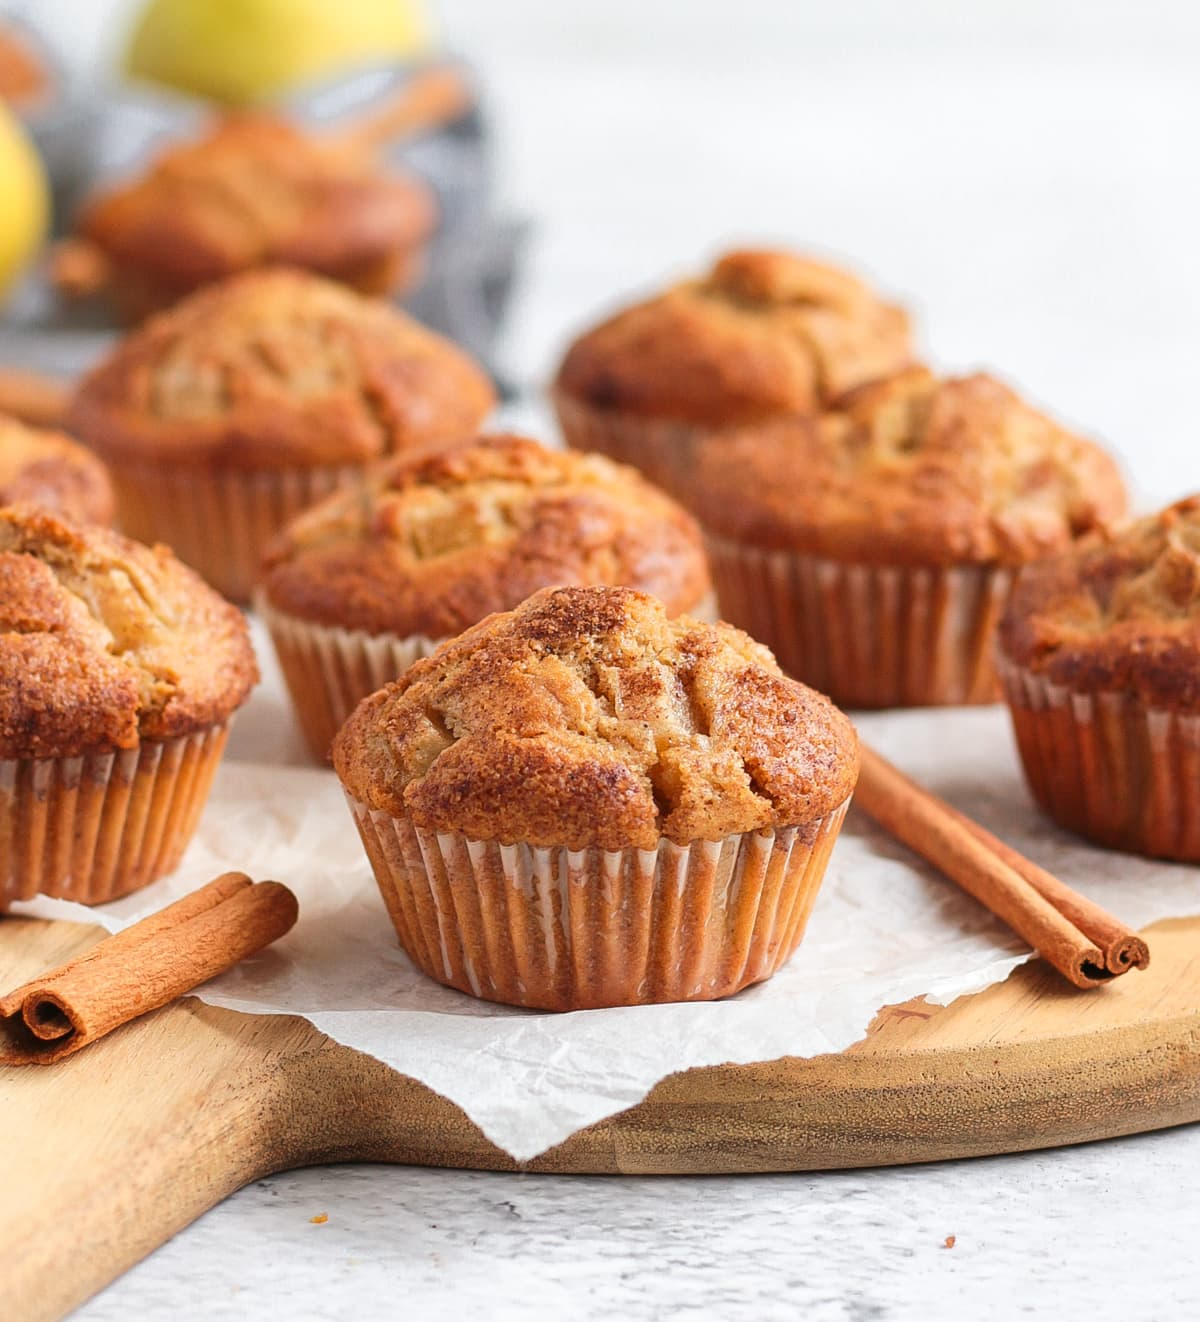 Muffins on a round wooden board with cinnamon sticks